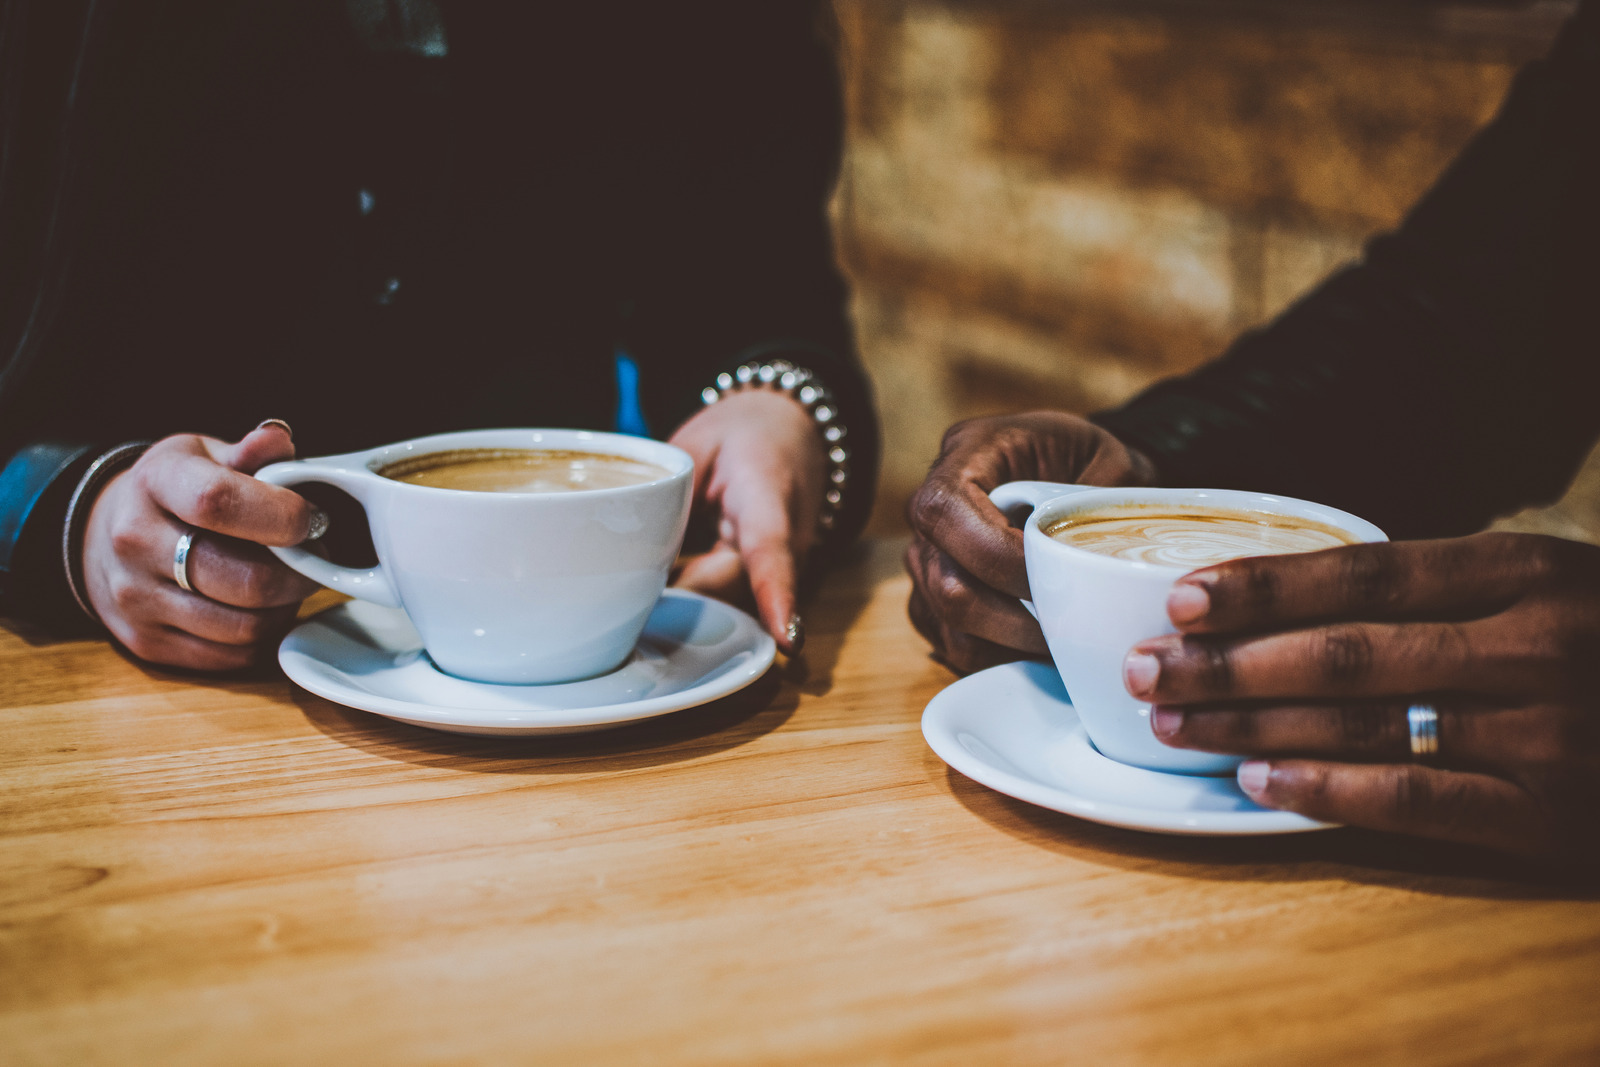 Two people sat holding mugs of coffee